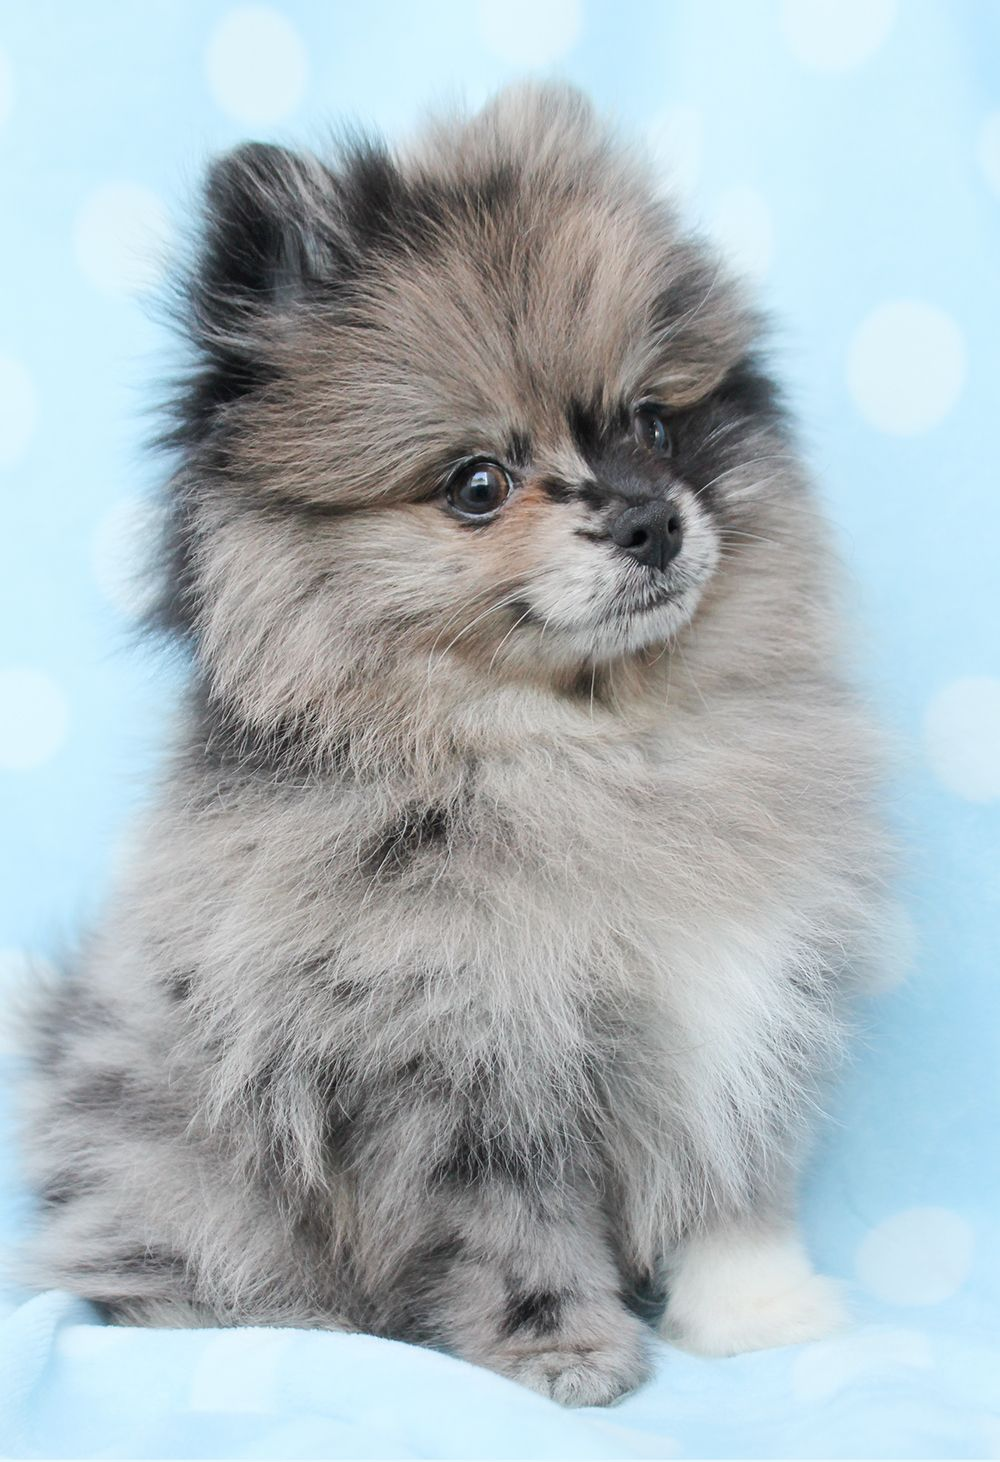 Pomeranian 336 A High Res Jpg 1 000 1 462 Pixels Pomeranian Dog Pomeranian Puppy Puppies